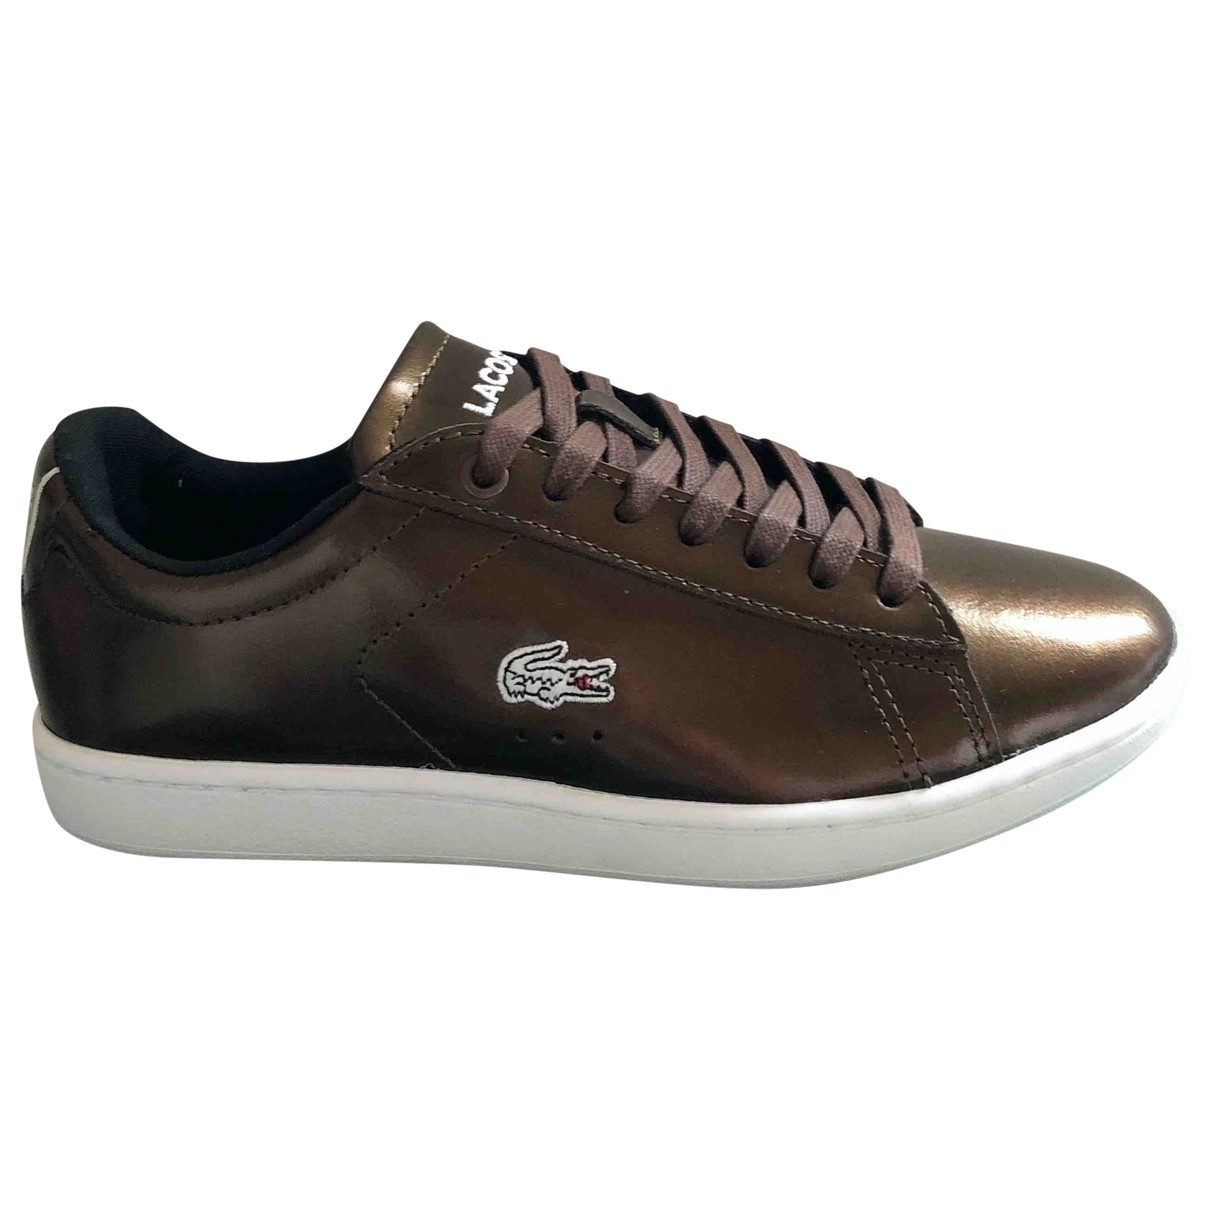 Lacoste \N Metallic Patent leather Trainers for Women 37.5 EU